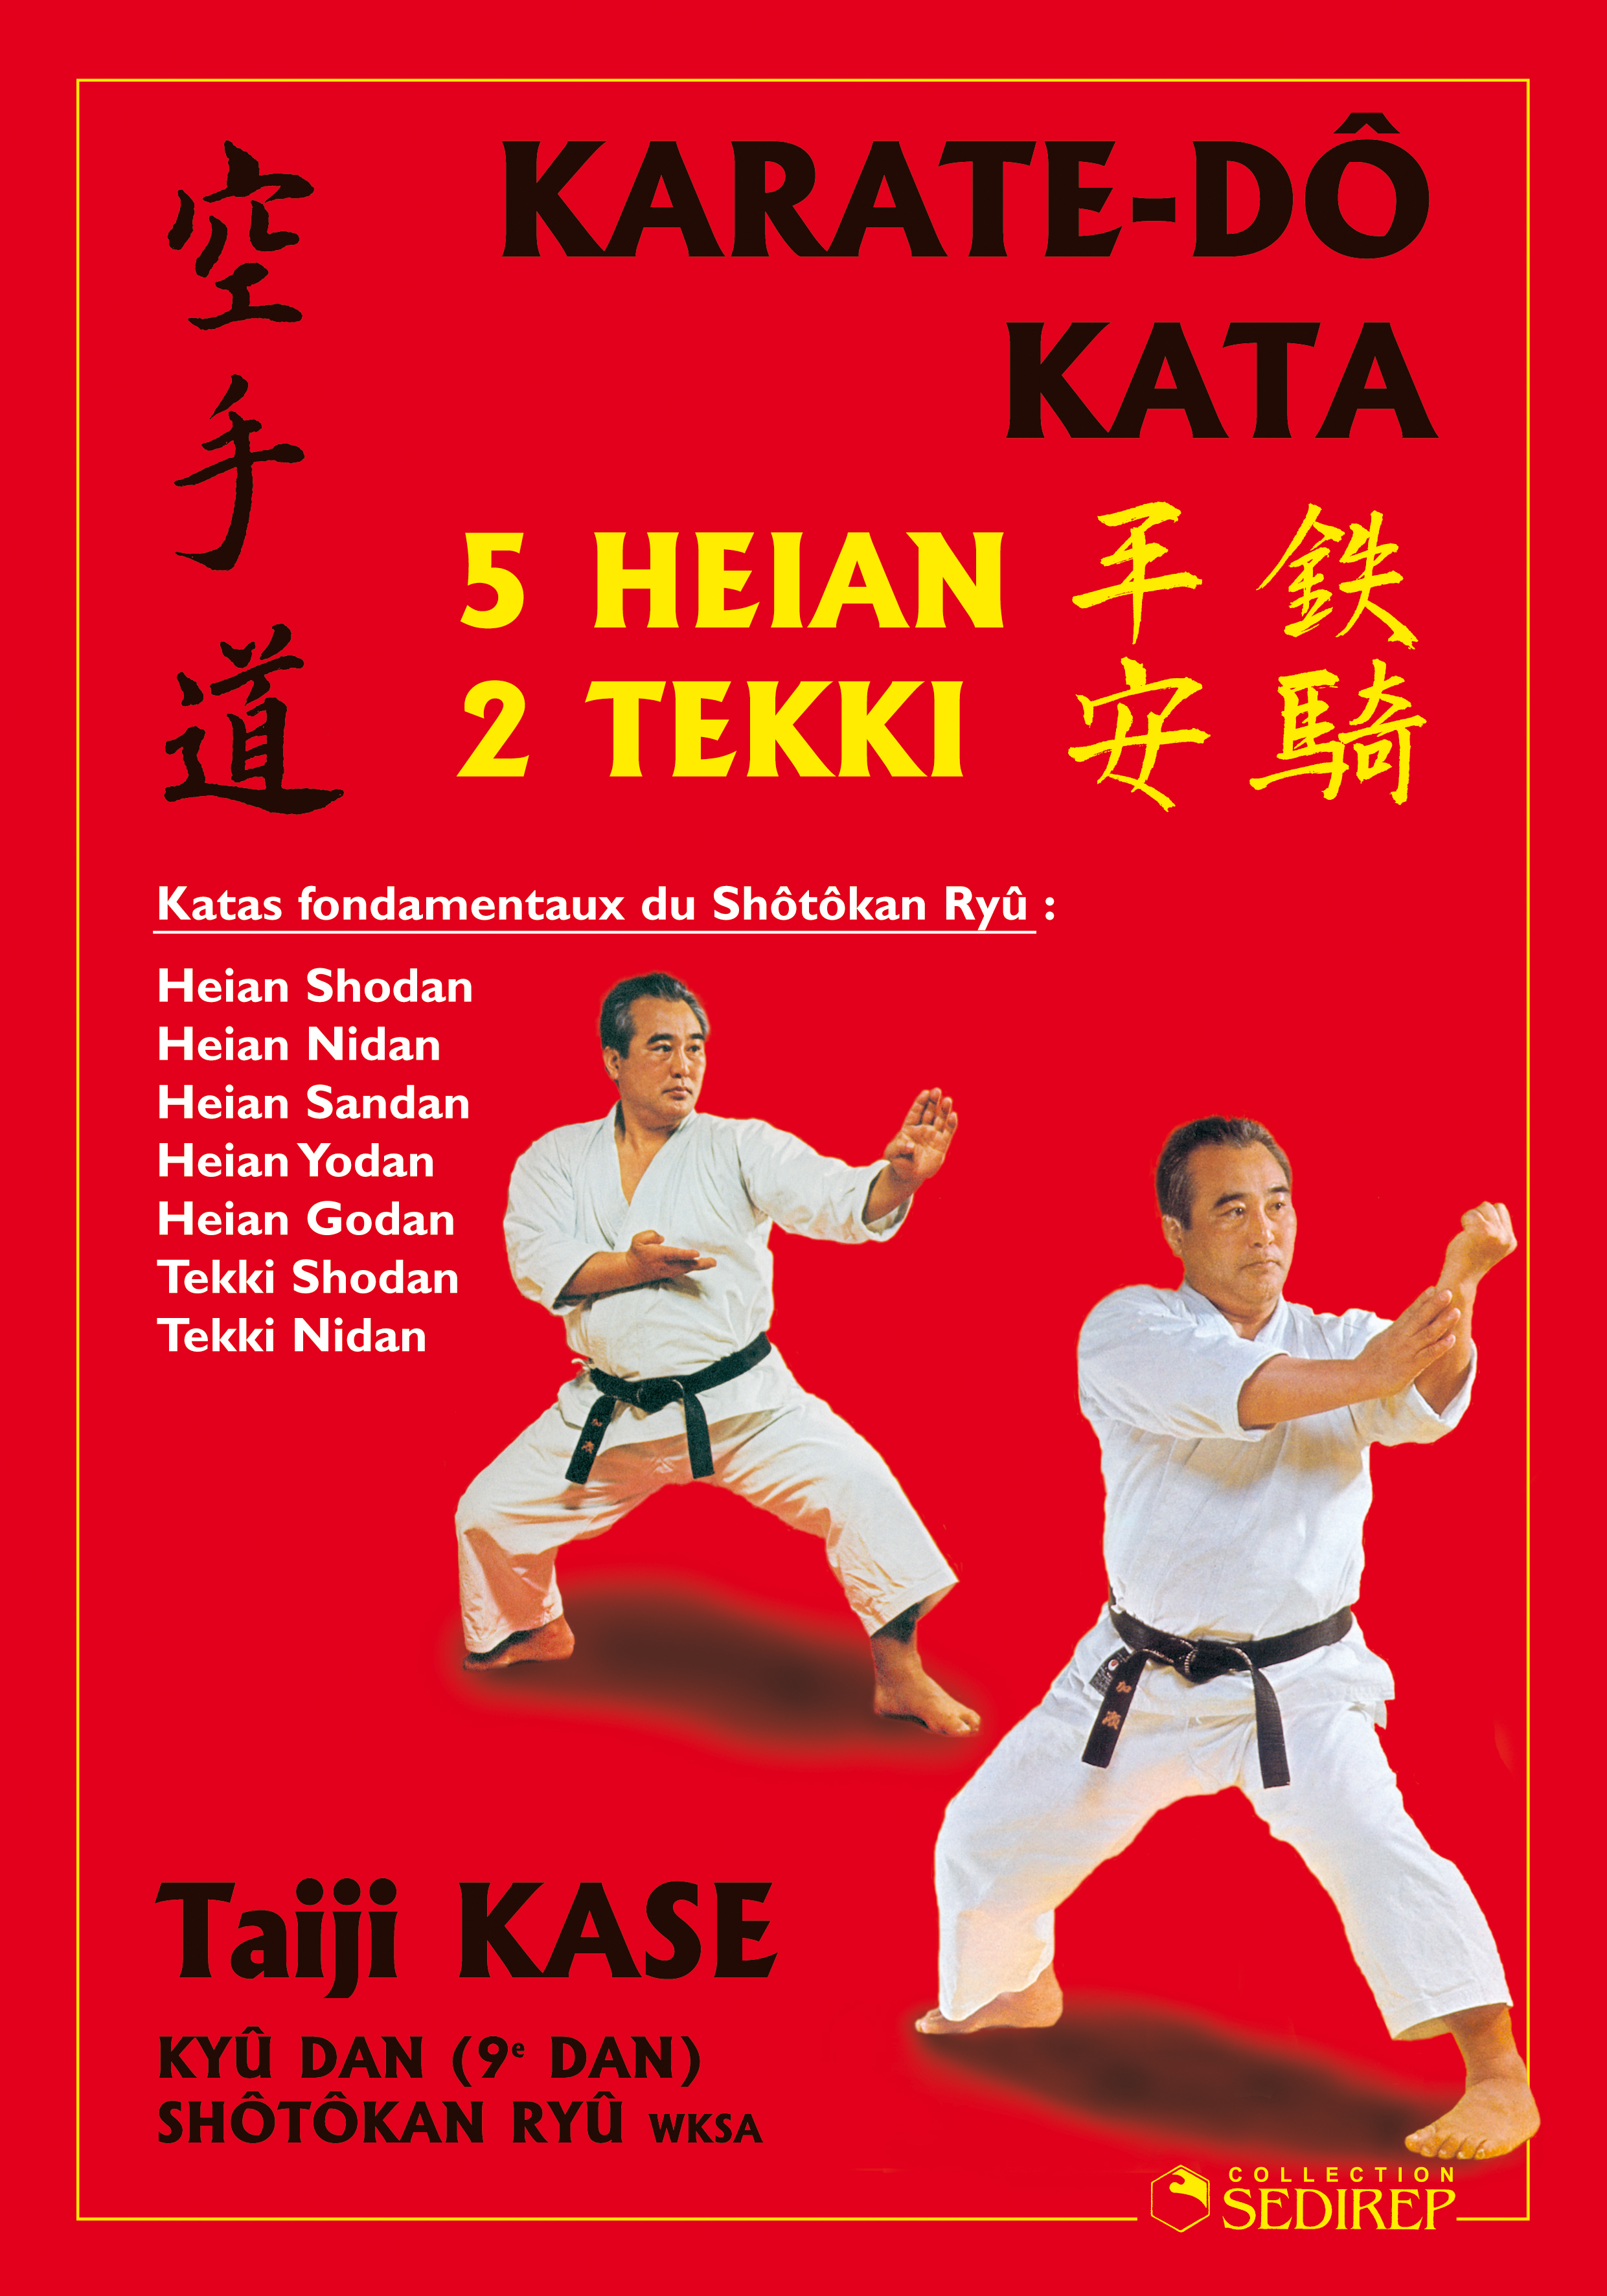 KARATE-DO KATA  5 HEIAN 2 TEKKI